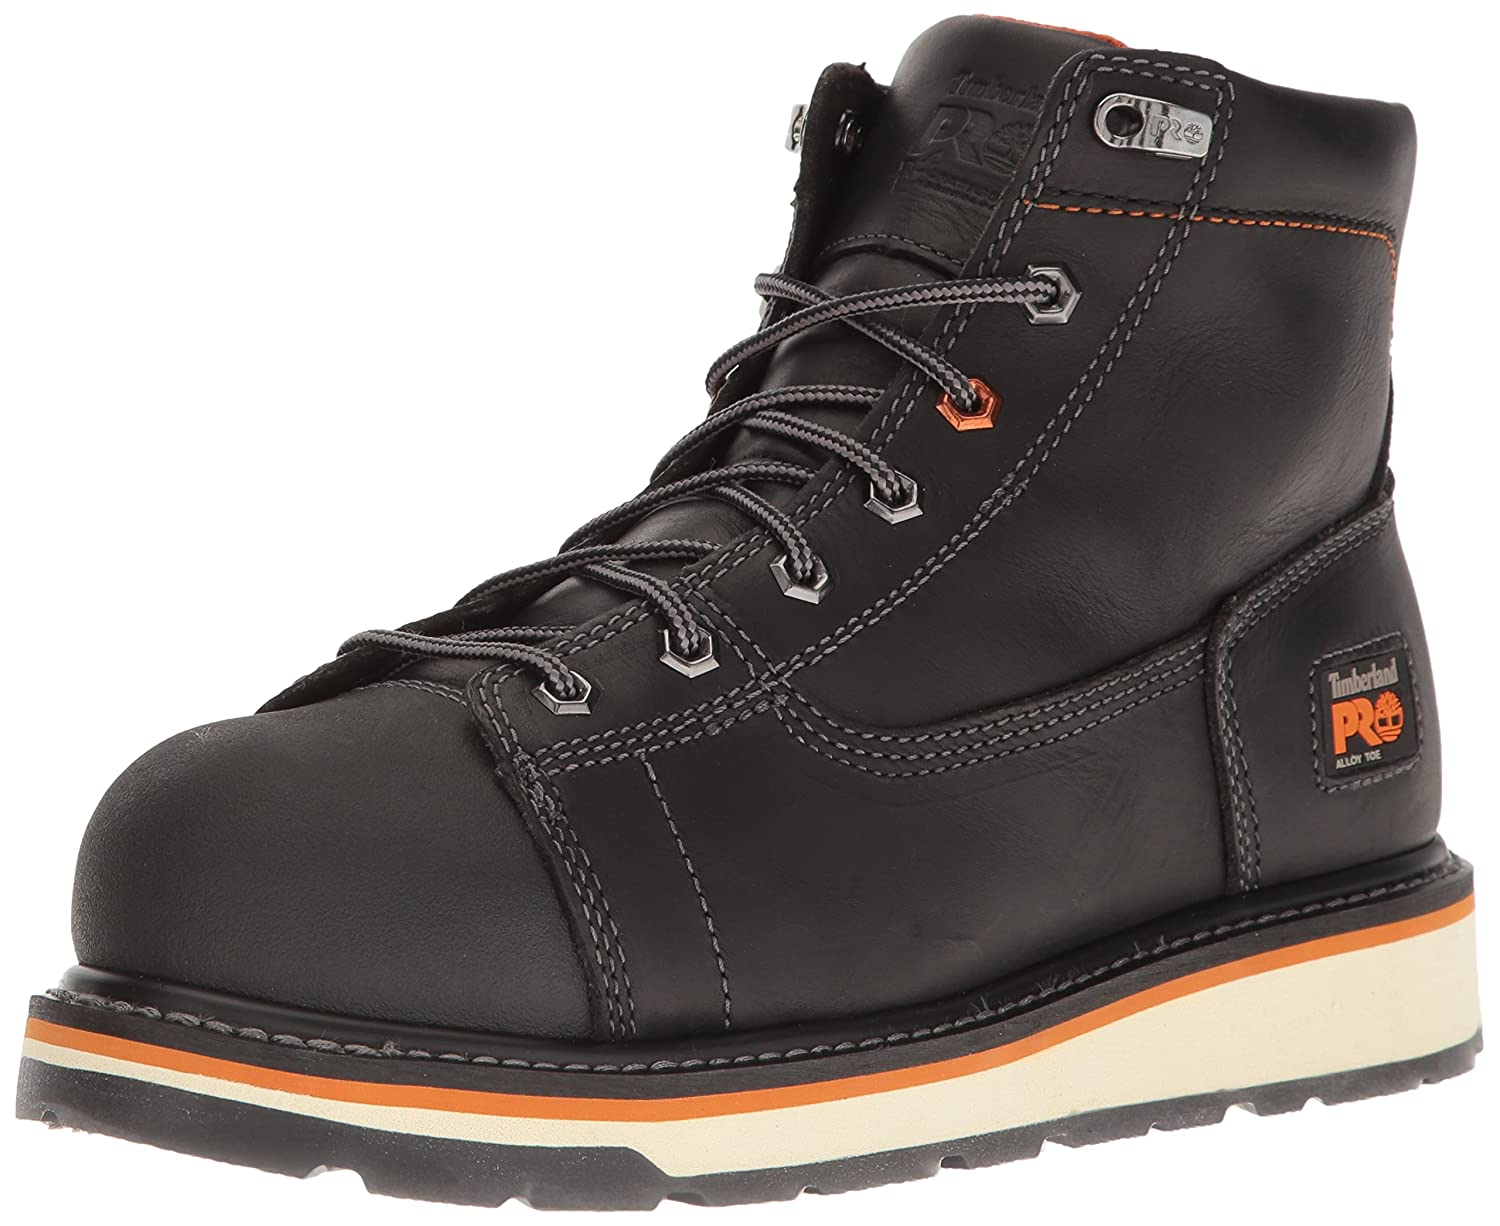 Timberland Pro Gridworks 6 Opinión gaGPNjh